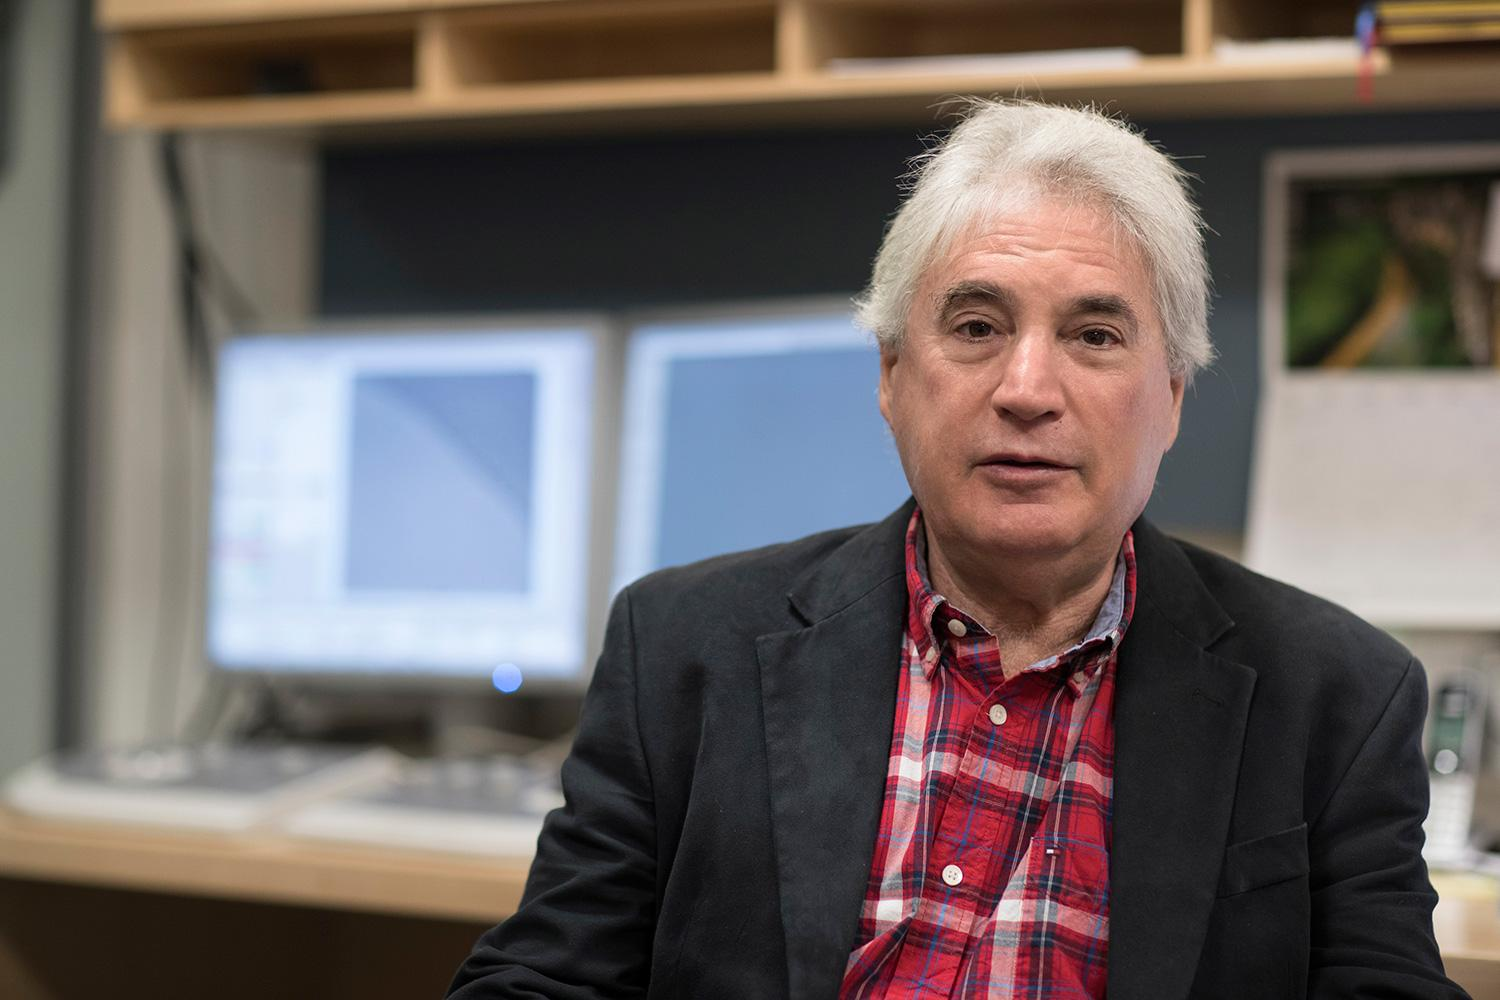 Edward Egelman has attracted national and international headlines for amazing discoveries at the submicroscopic level.